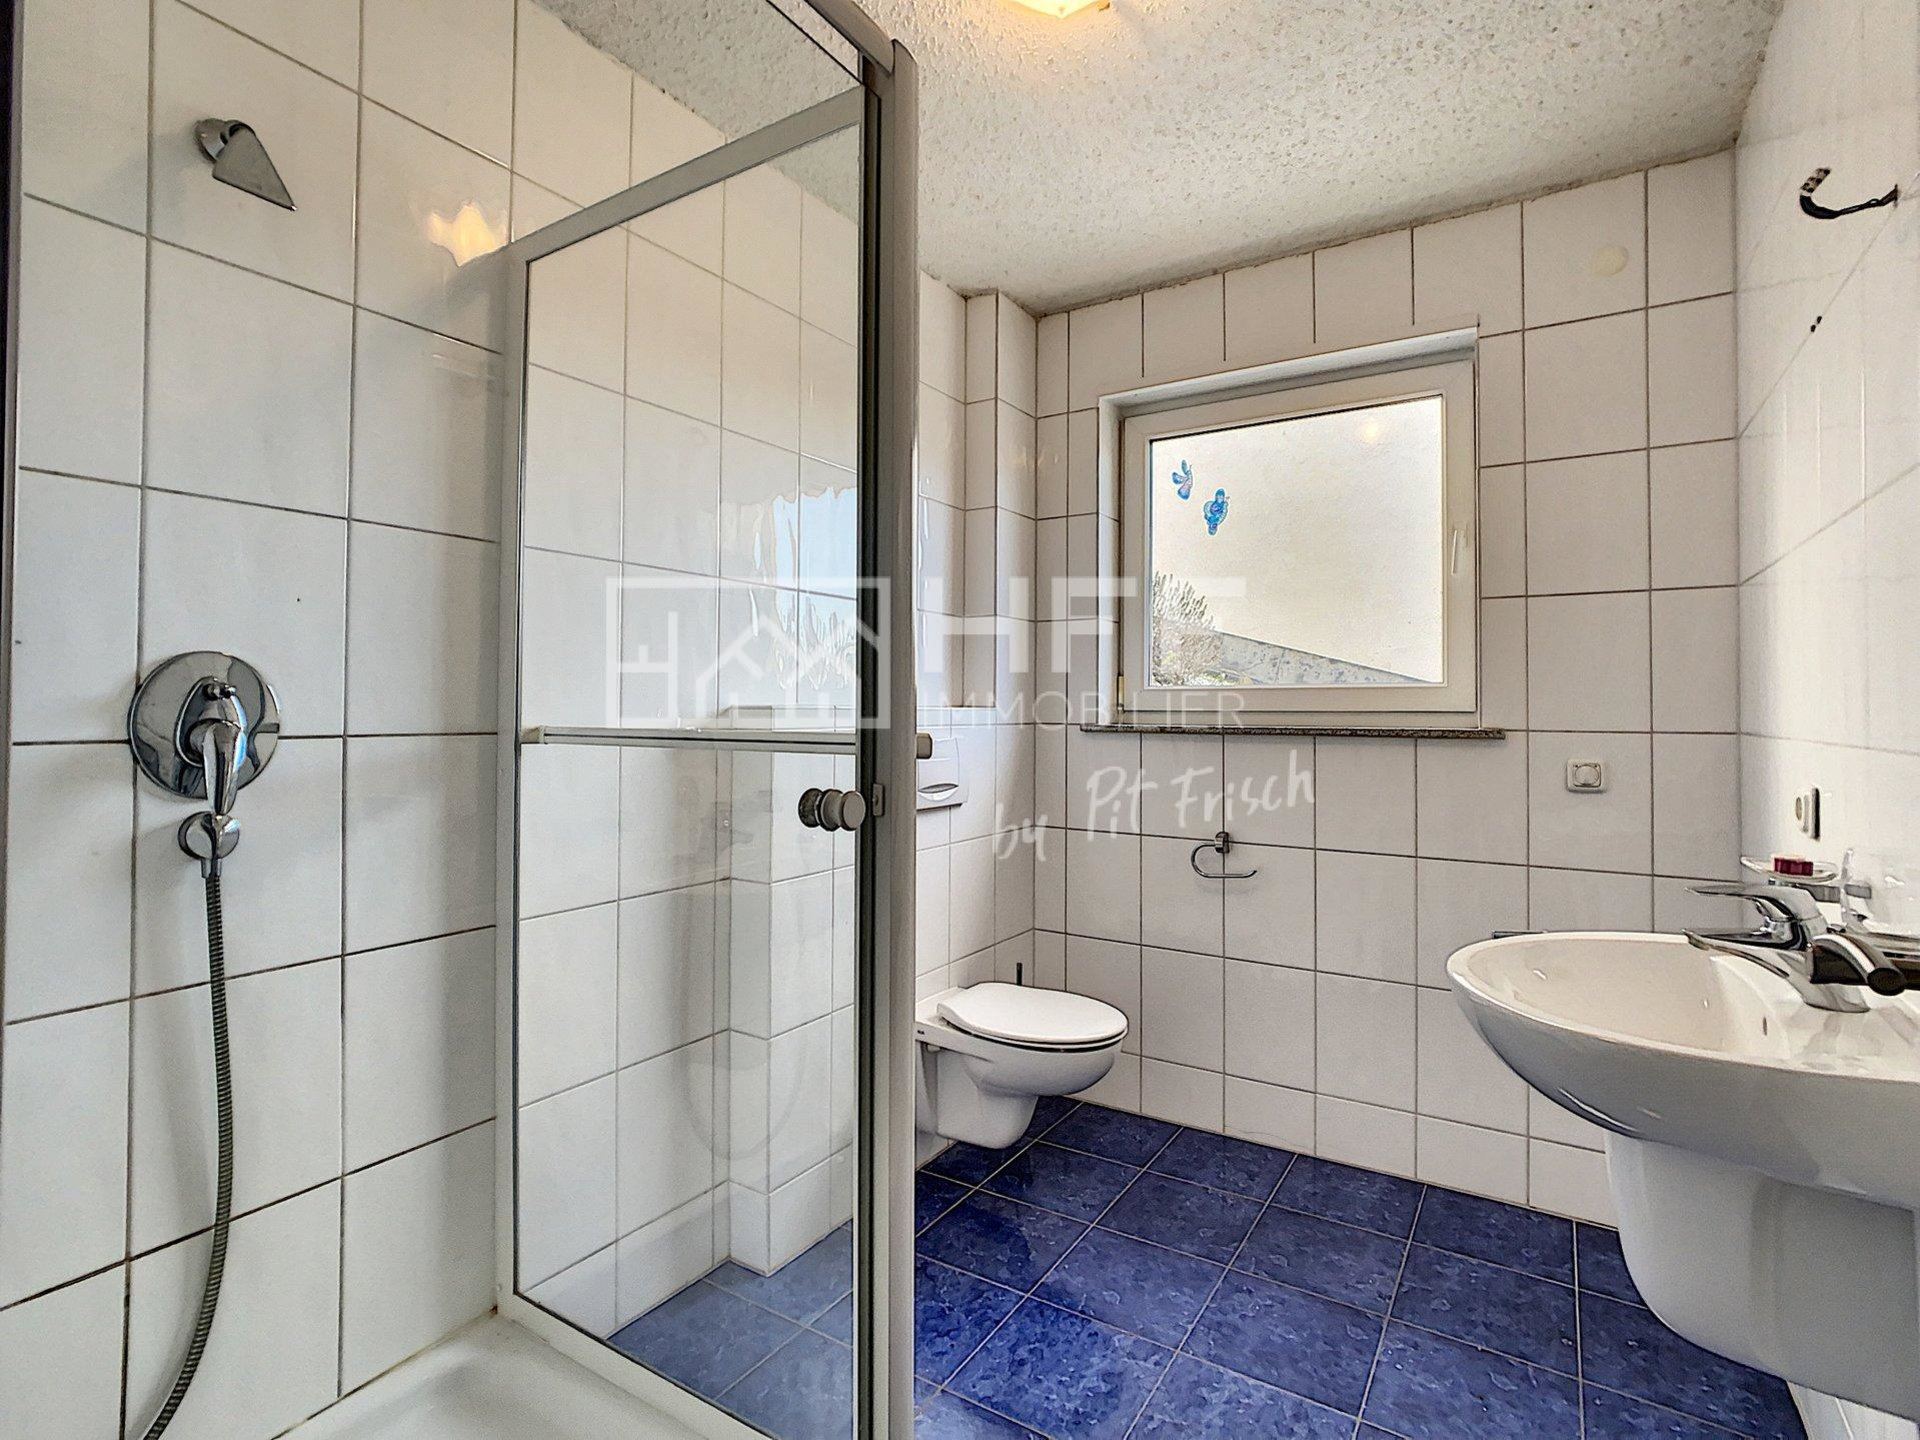 House with studio for sale in Moersdorf